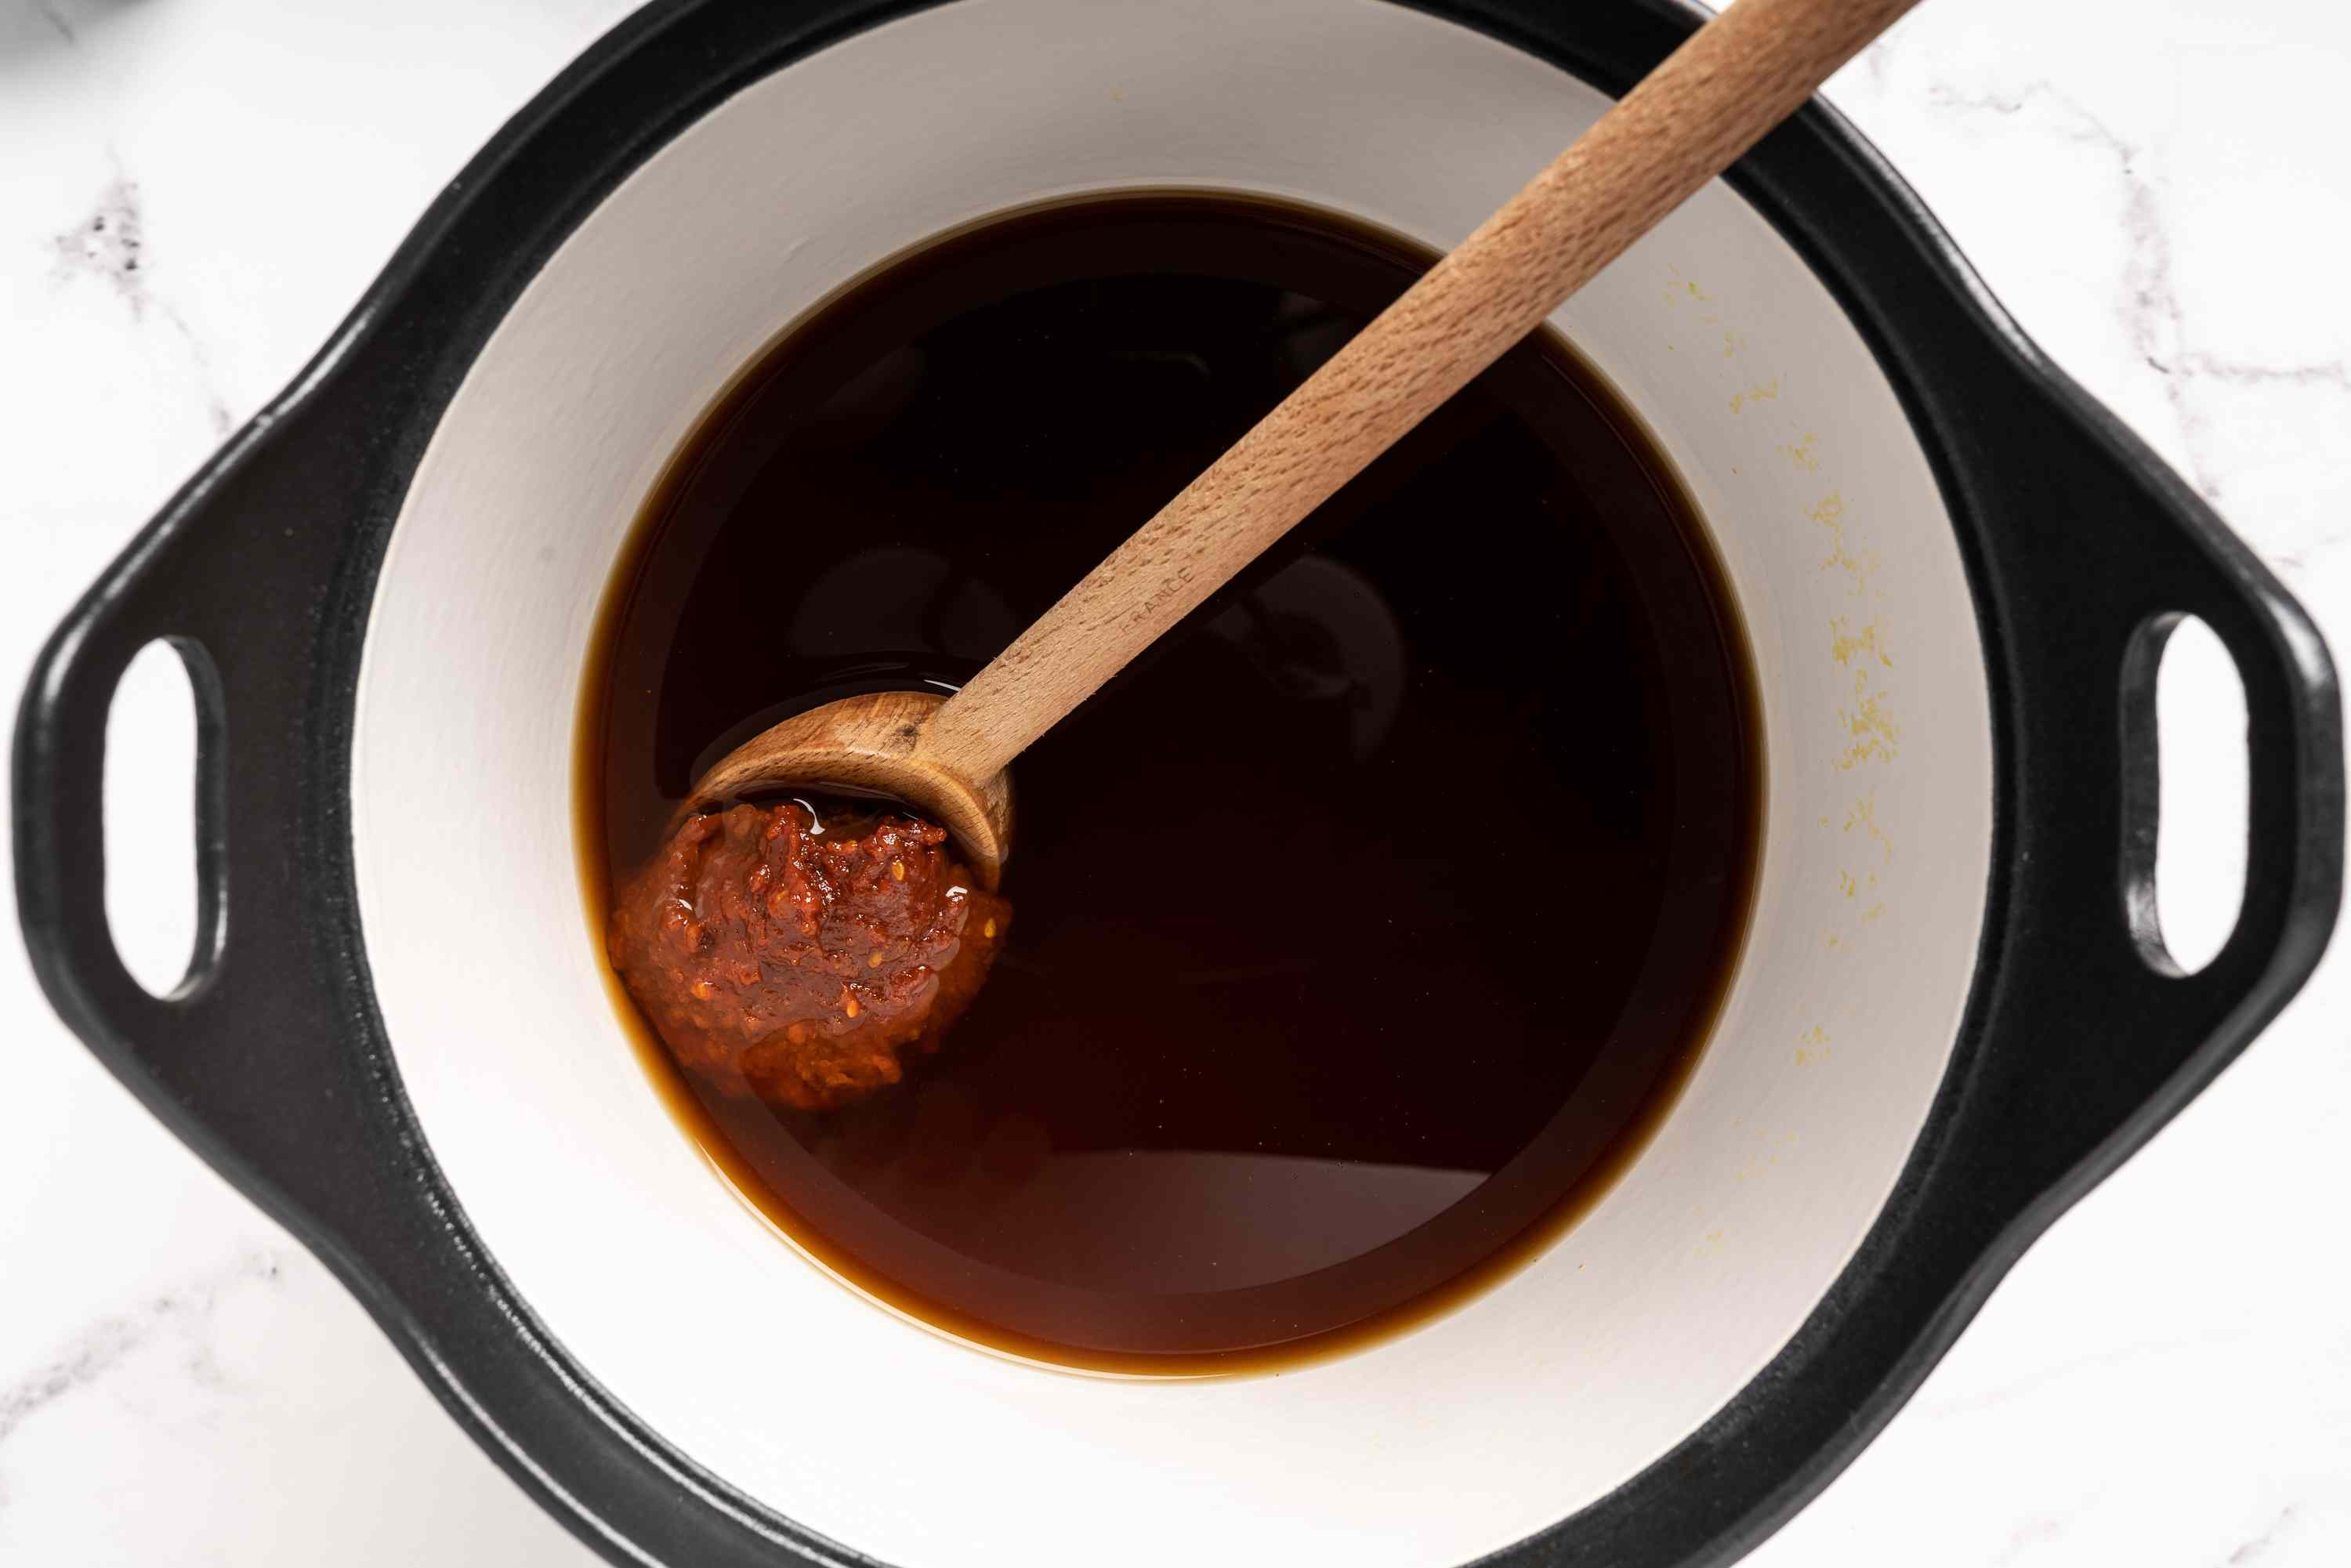 Add the soybean paste (daenjang) to the pot with beef broth